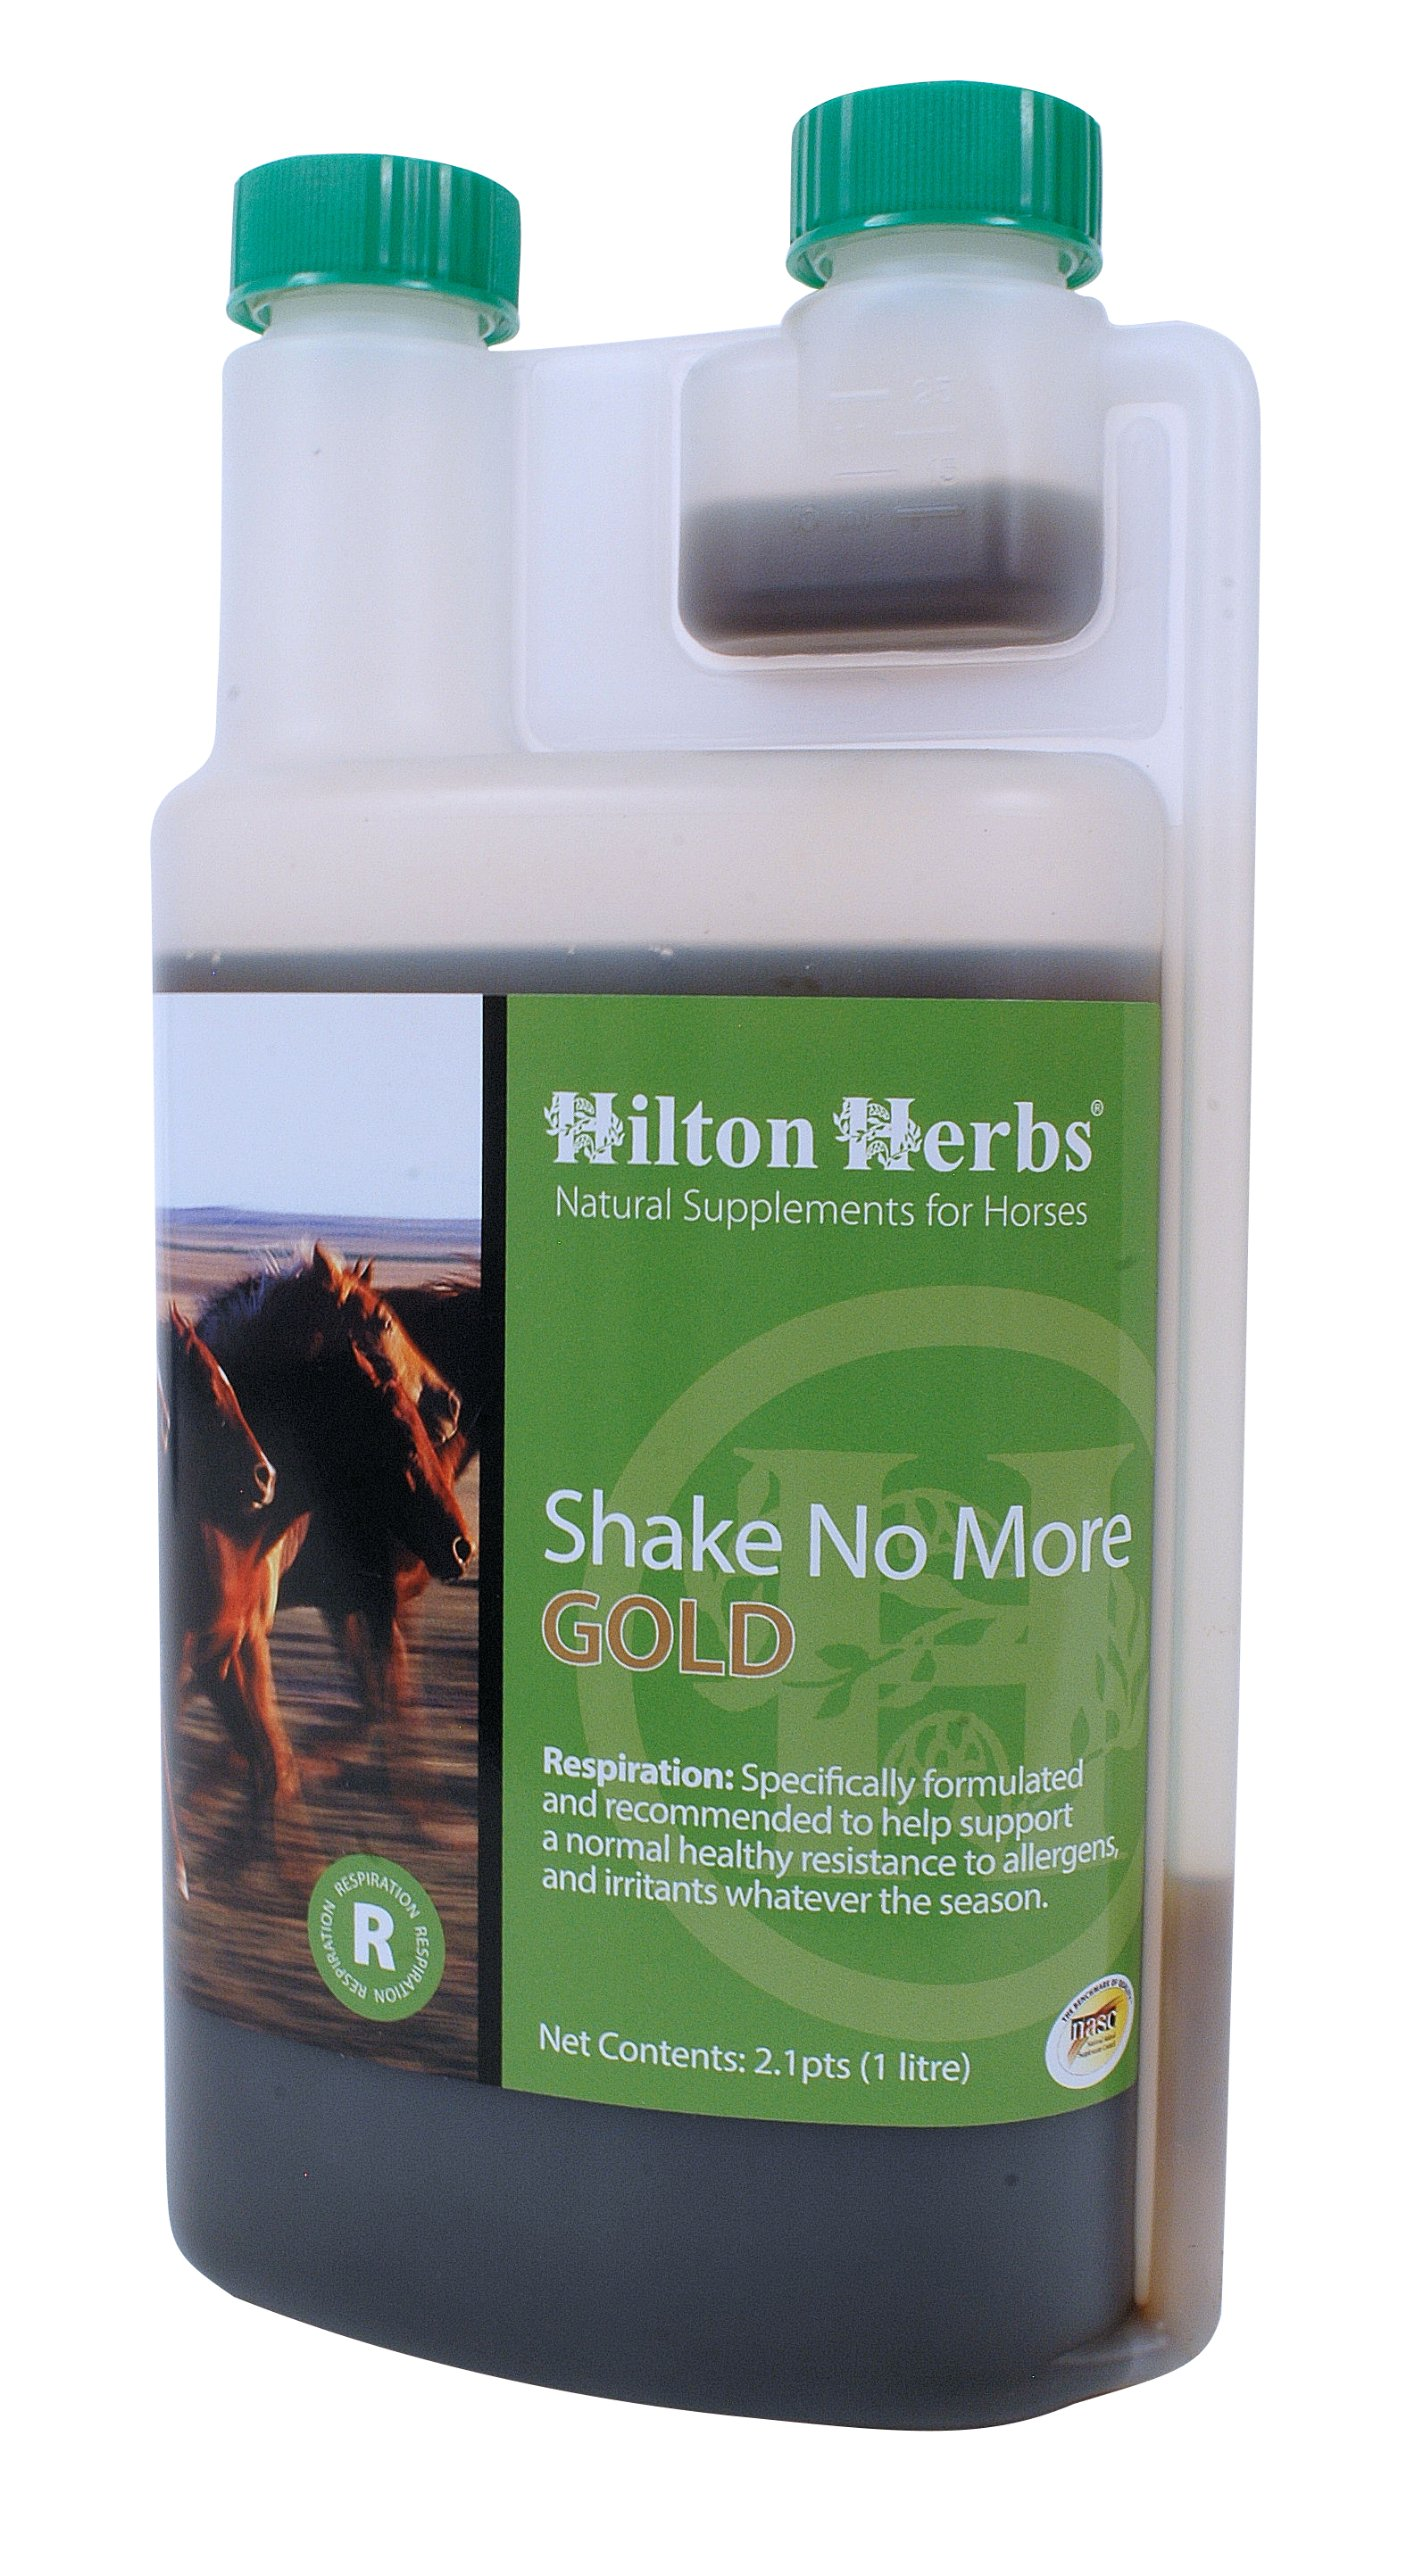 Hilton Herbs Shake No More Gold Allergy Support Supplement for Horses, 2.1pt Bottle